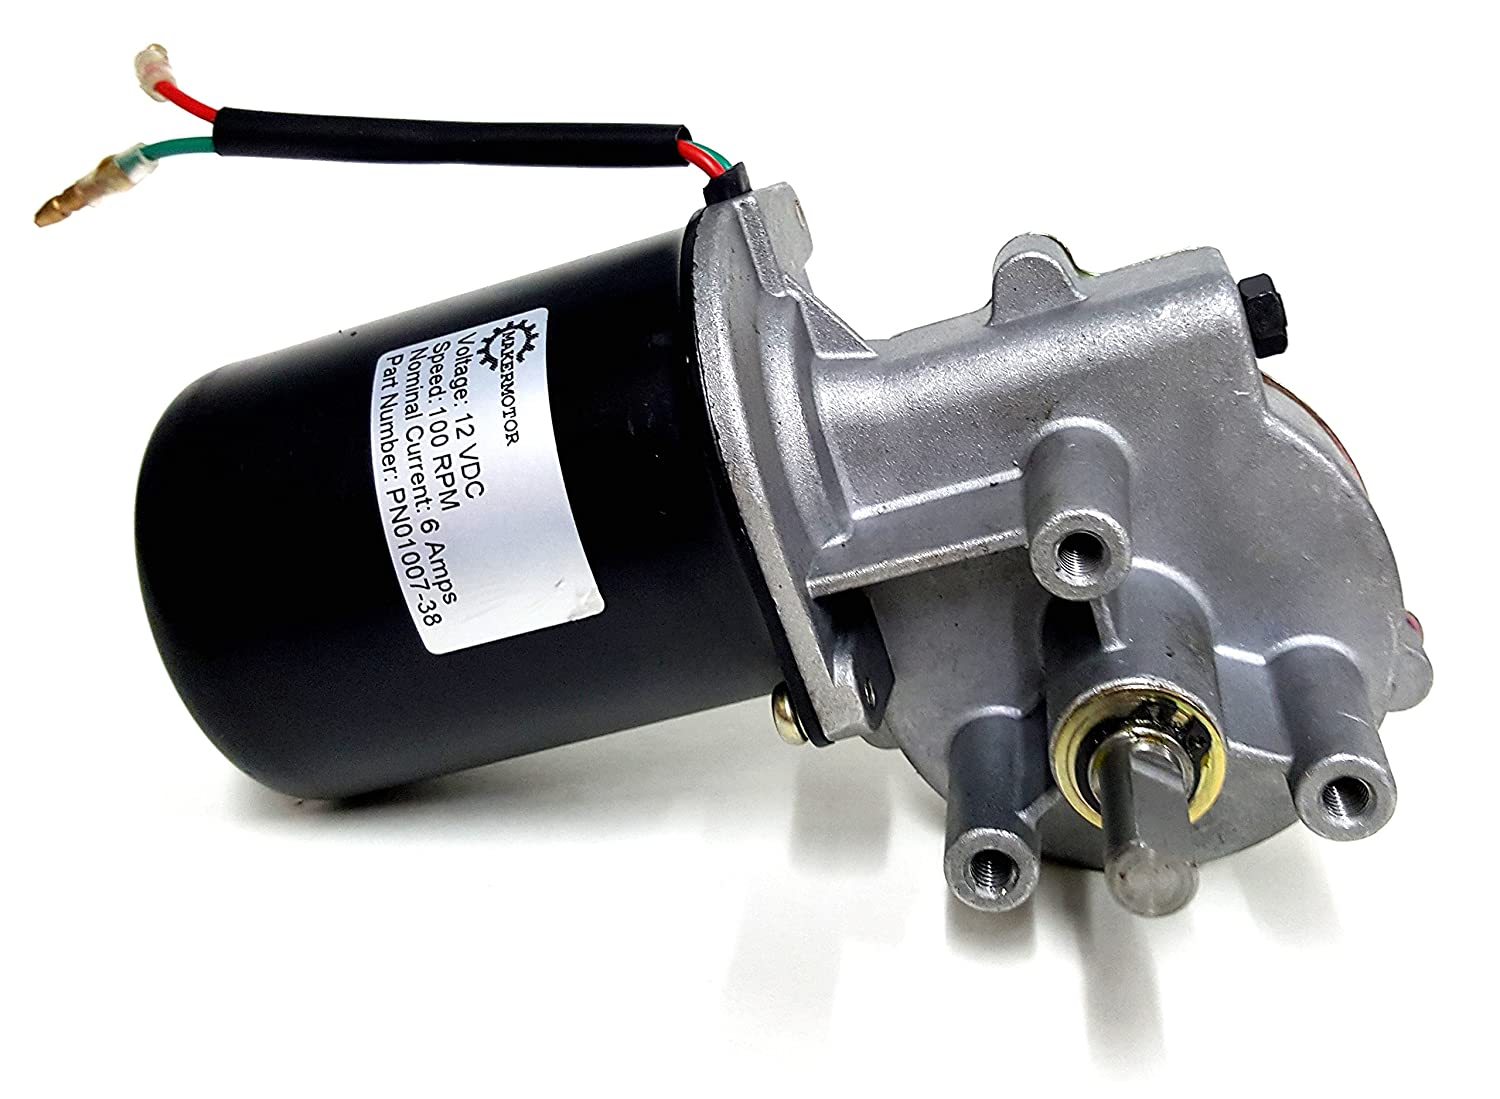 "Makermotor 3/8"" D Shaft 12V DC Reversible Electric Gear Motor 100 RPM: Industrial & Scientific"